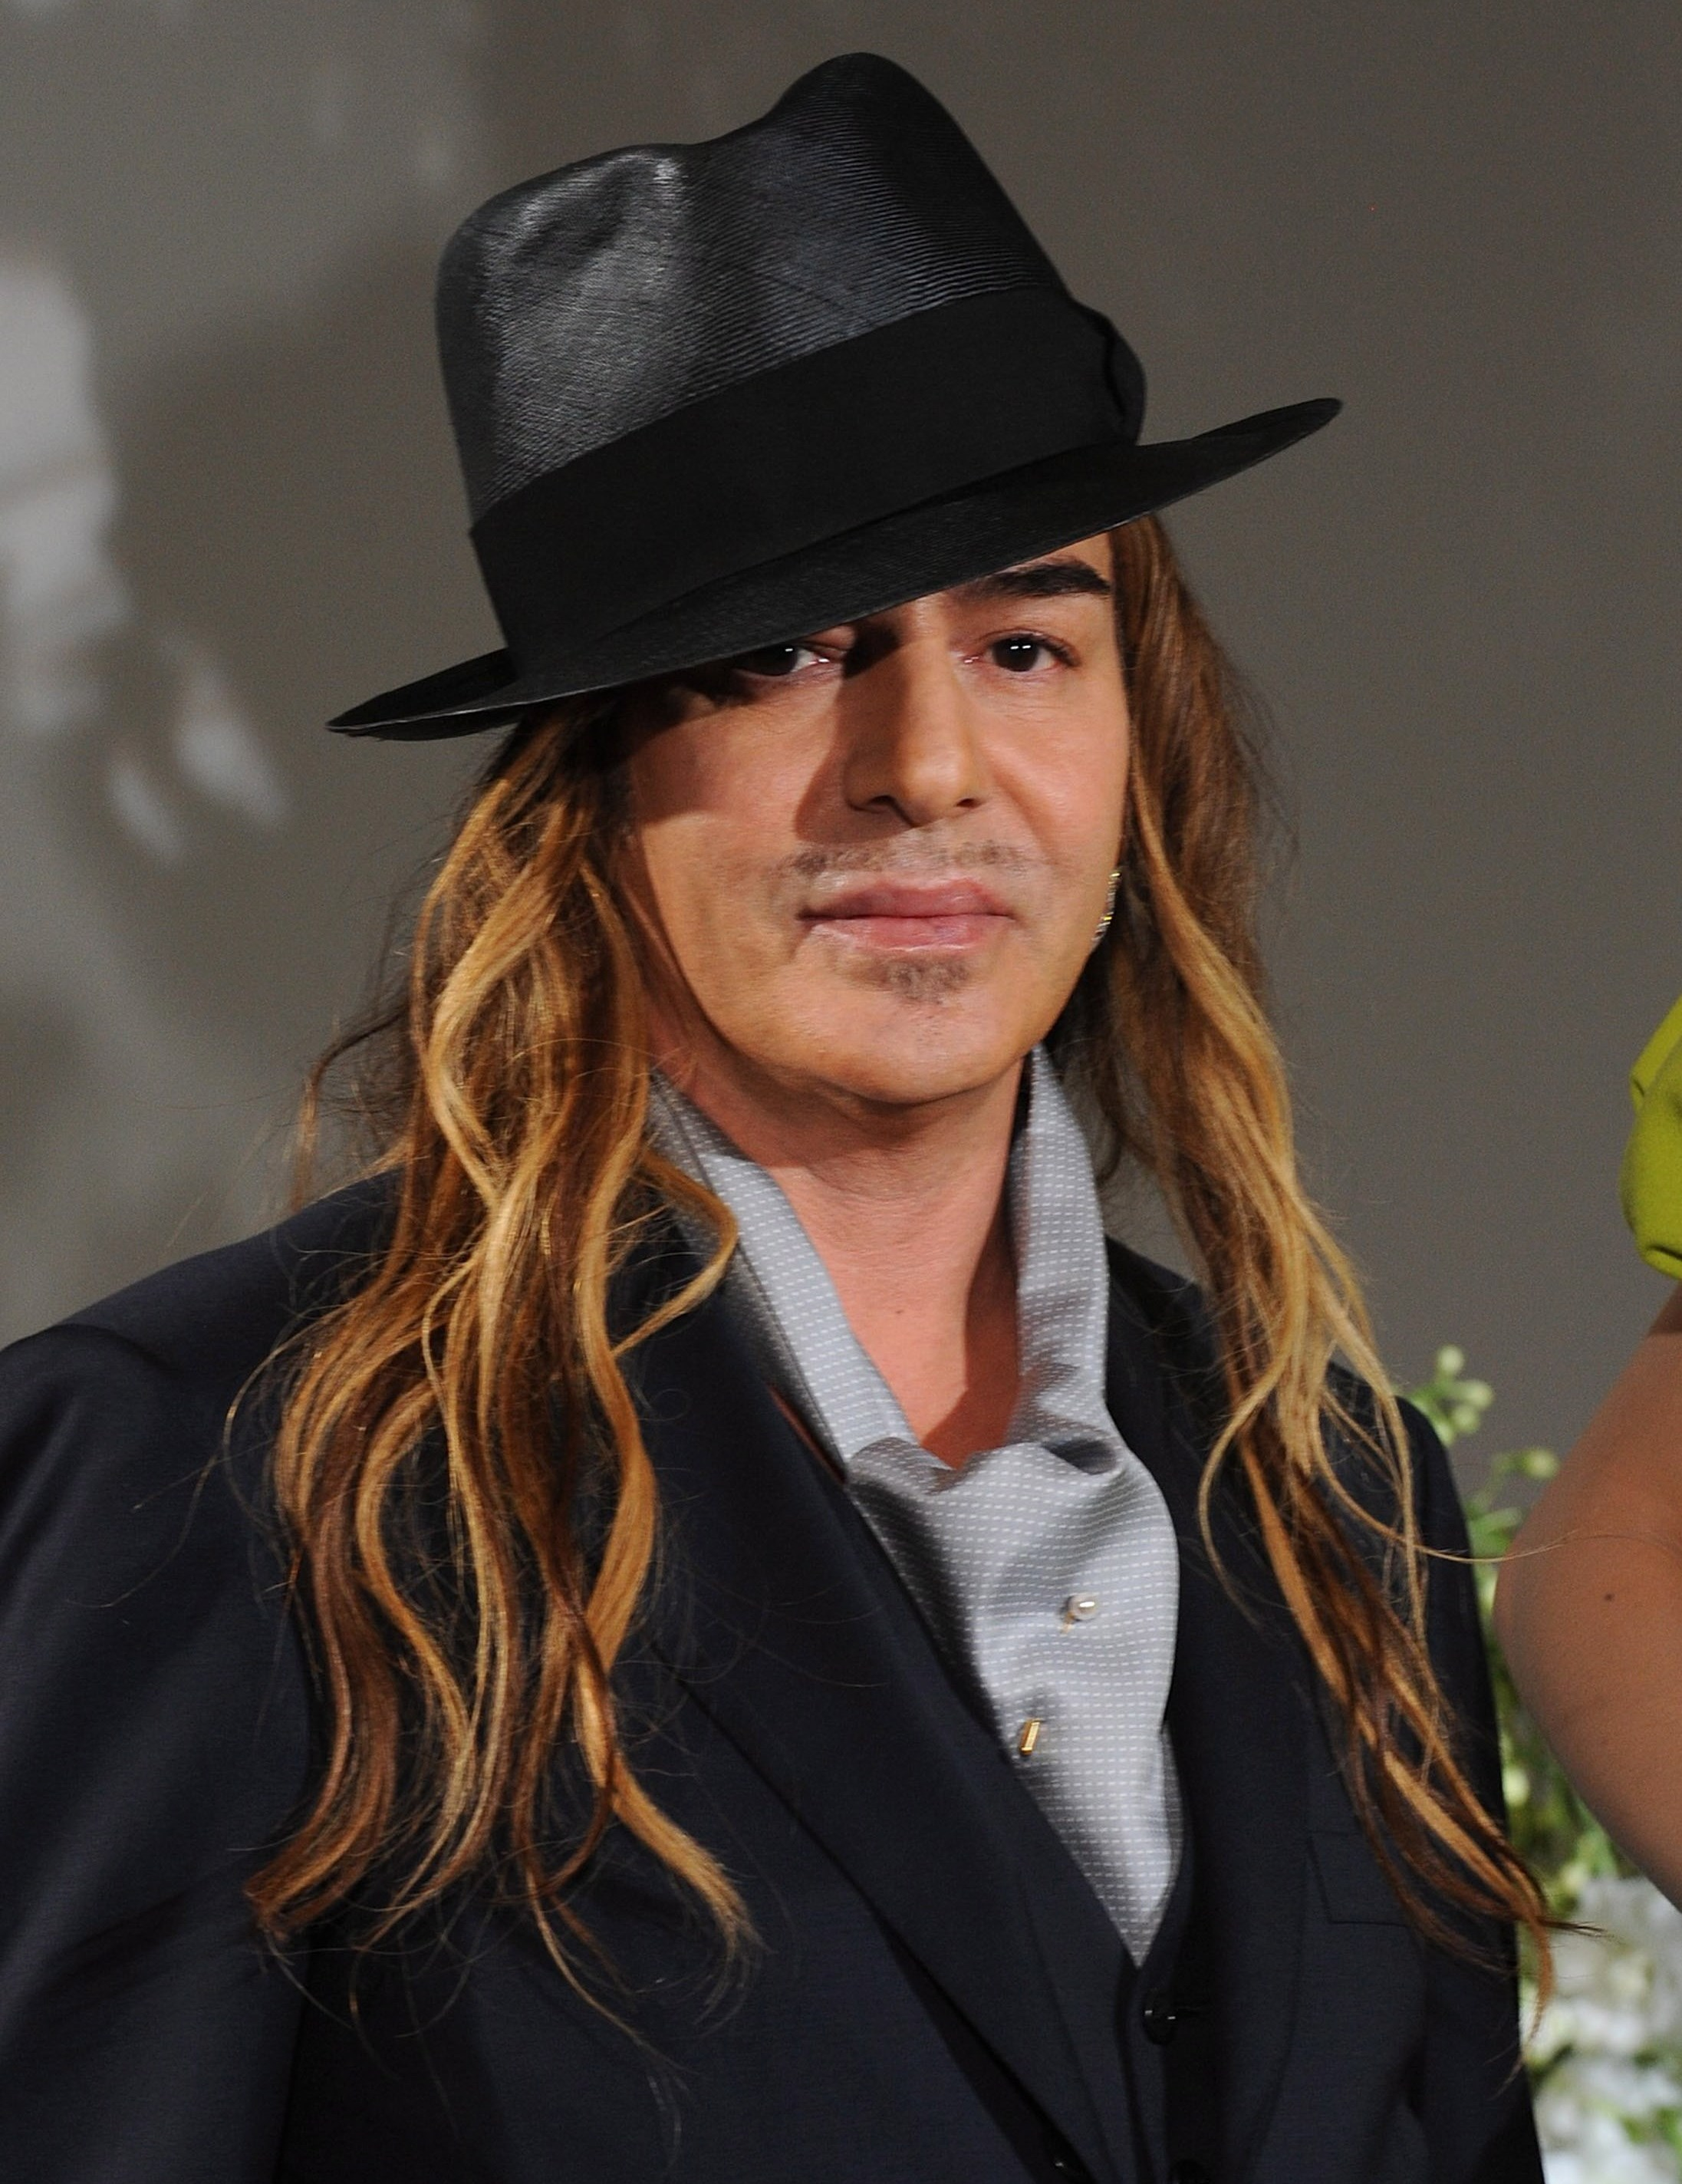 John Galliano: 'I Love Hitler' (VIDEO)